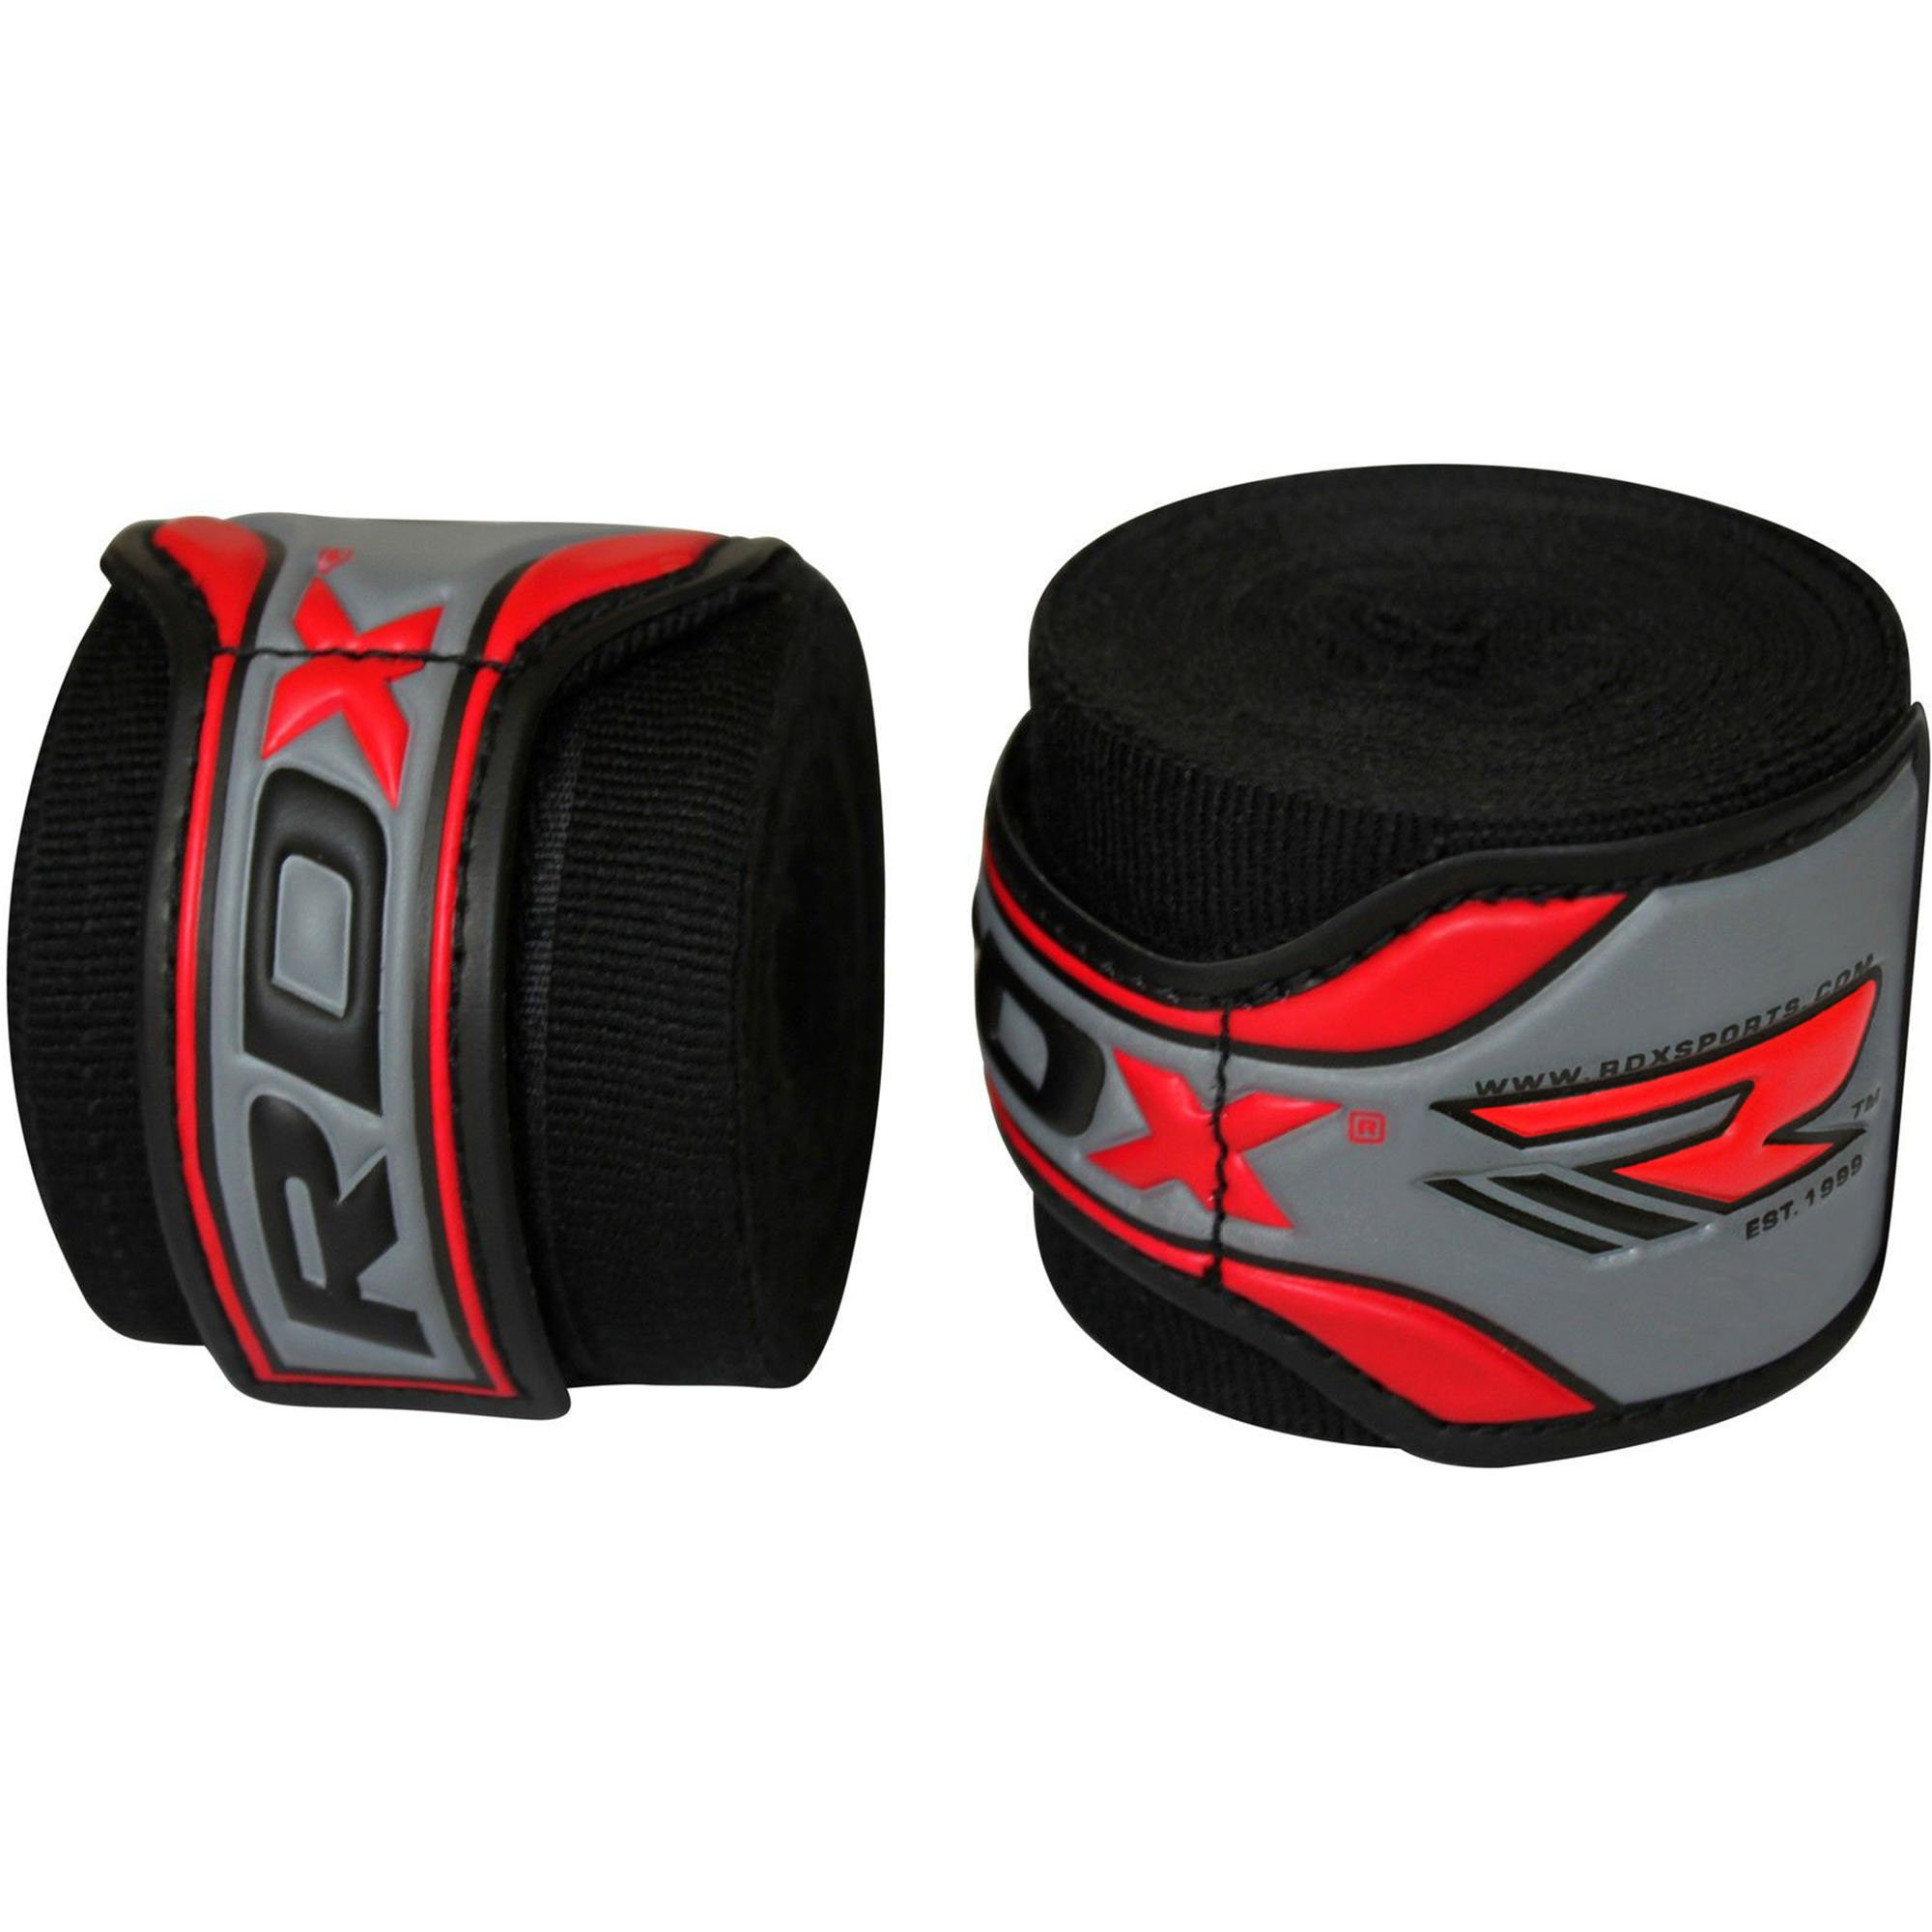 RDX BOXING HAND WRAP BLACK